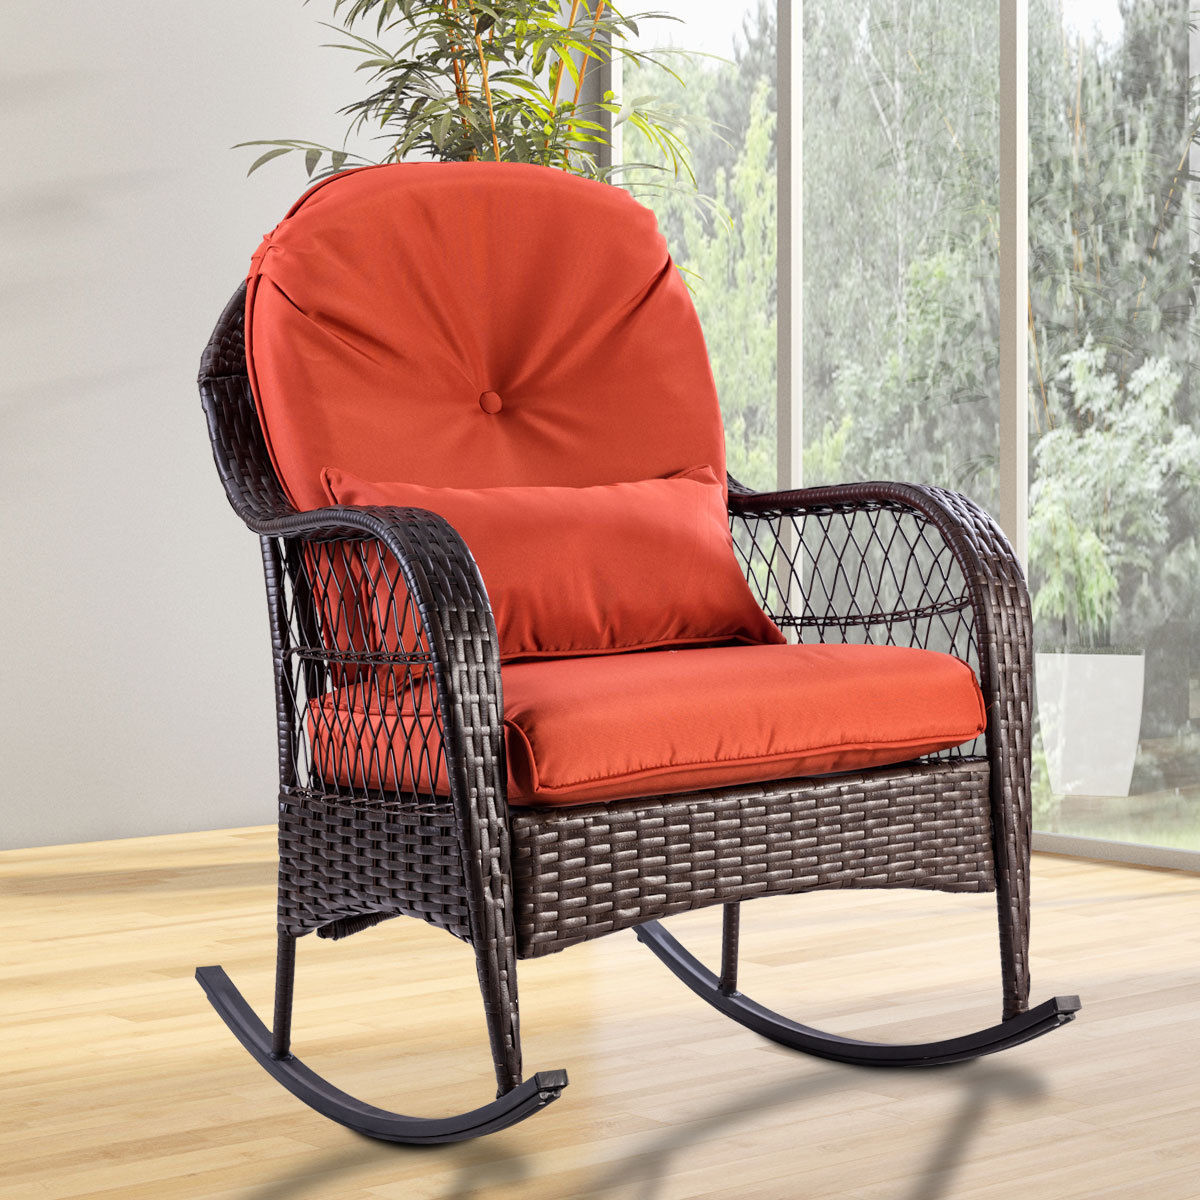 chair pd shop khaki outdoor cushion tortuga with rocking portside wicker